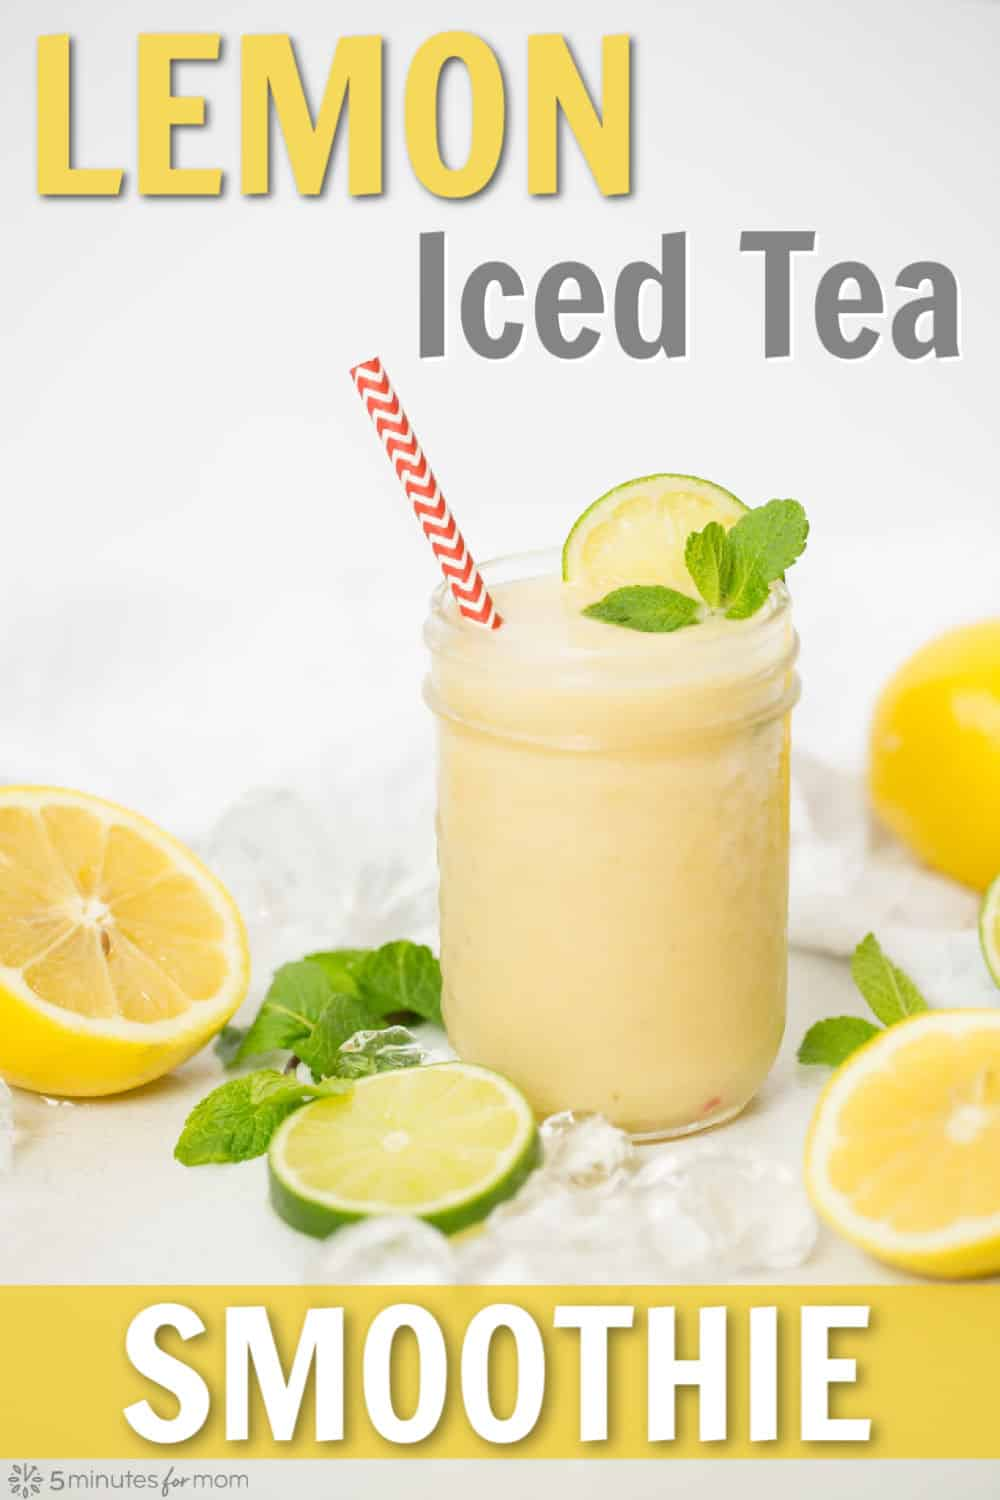 Lemon Iced Tea Smoothie Recipe